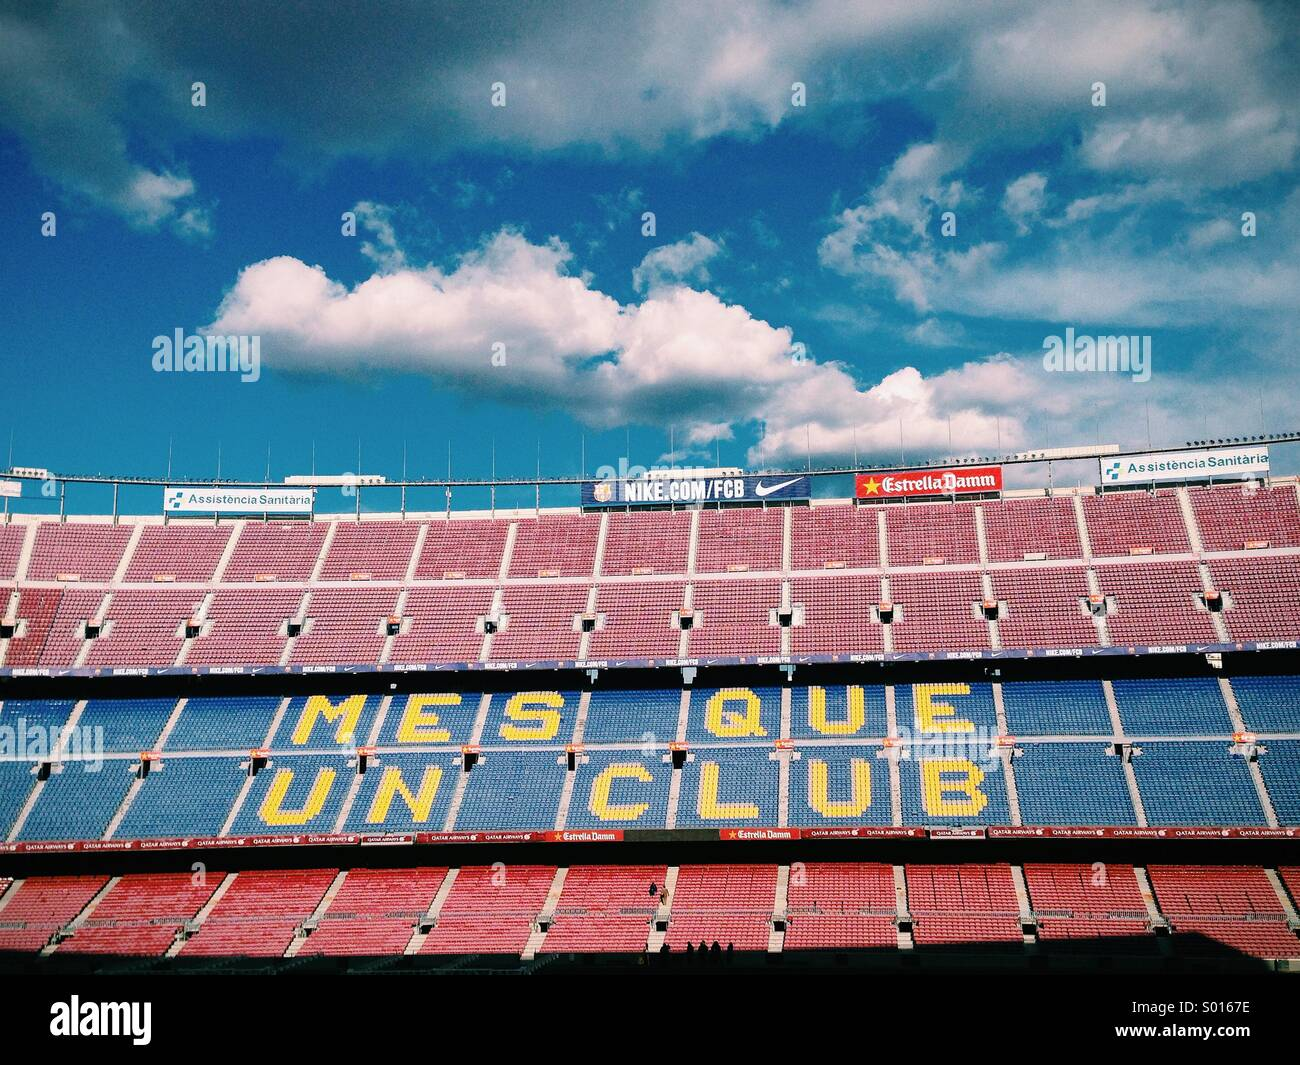 Stadium of FC Barcelona with Sky clouded - Stock Image